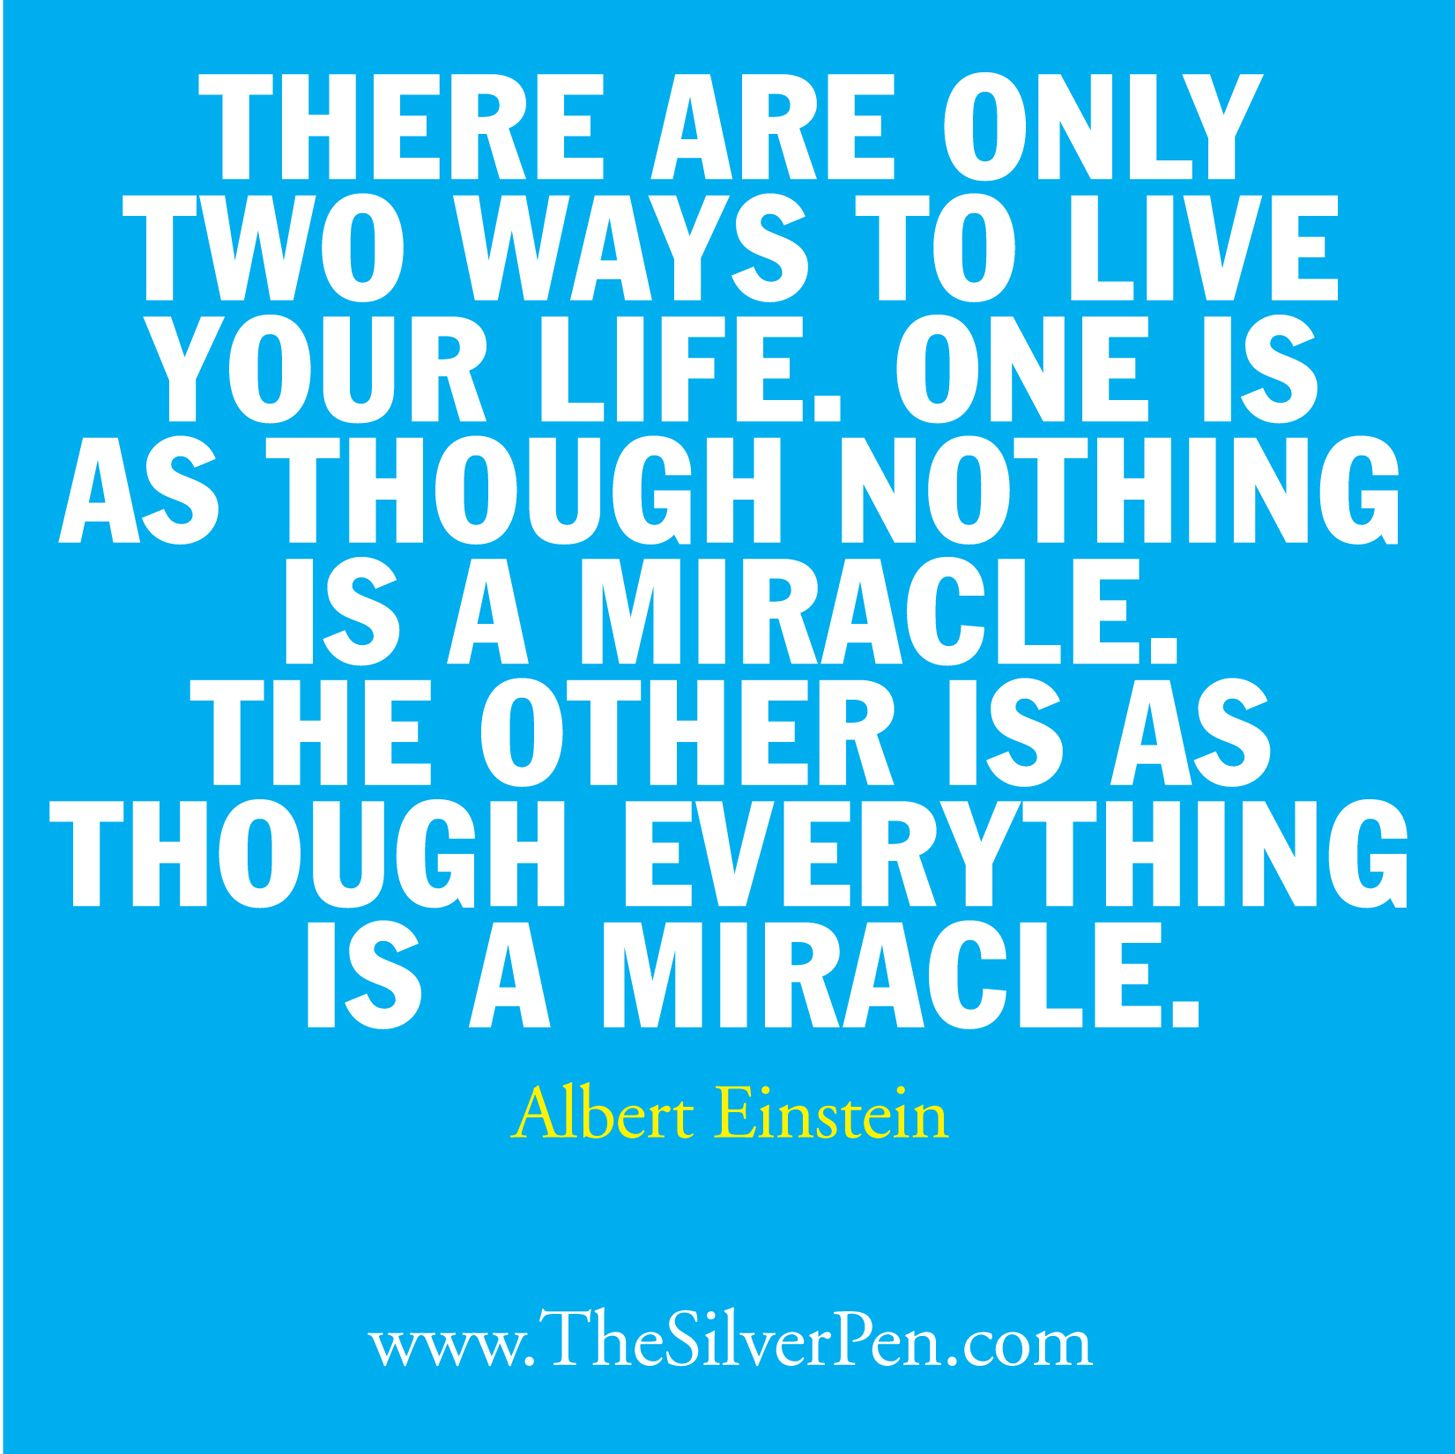 There are only two ways to live your life.  One is though nothing is a miracle.  The other is as though everything is a miracle.  -Albert Einstein